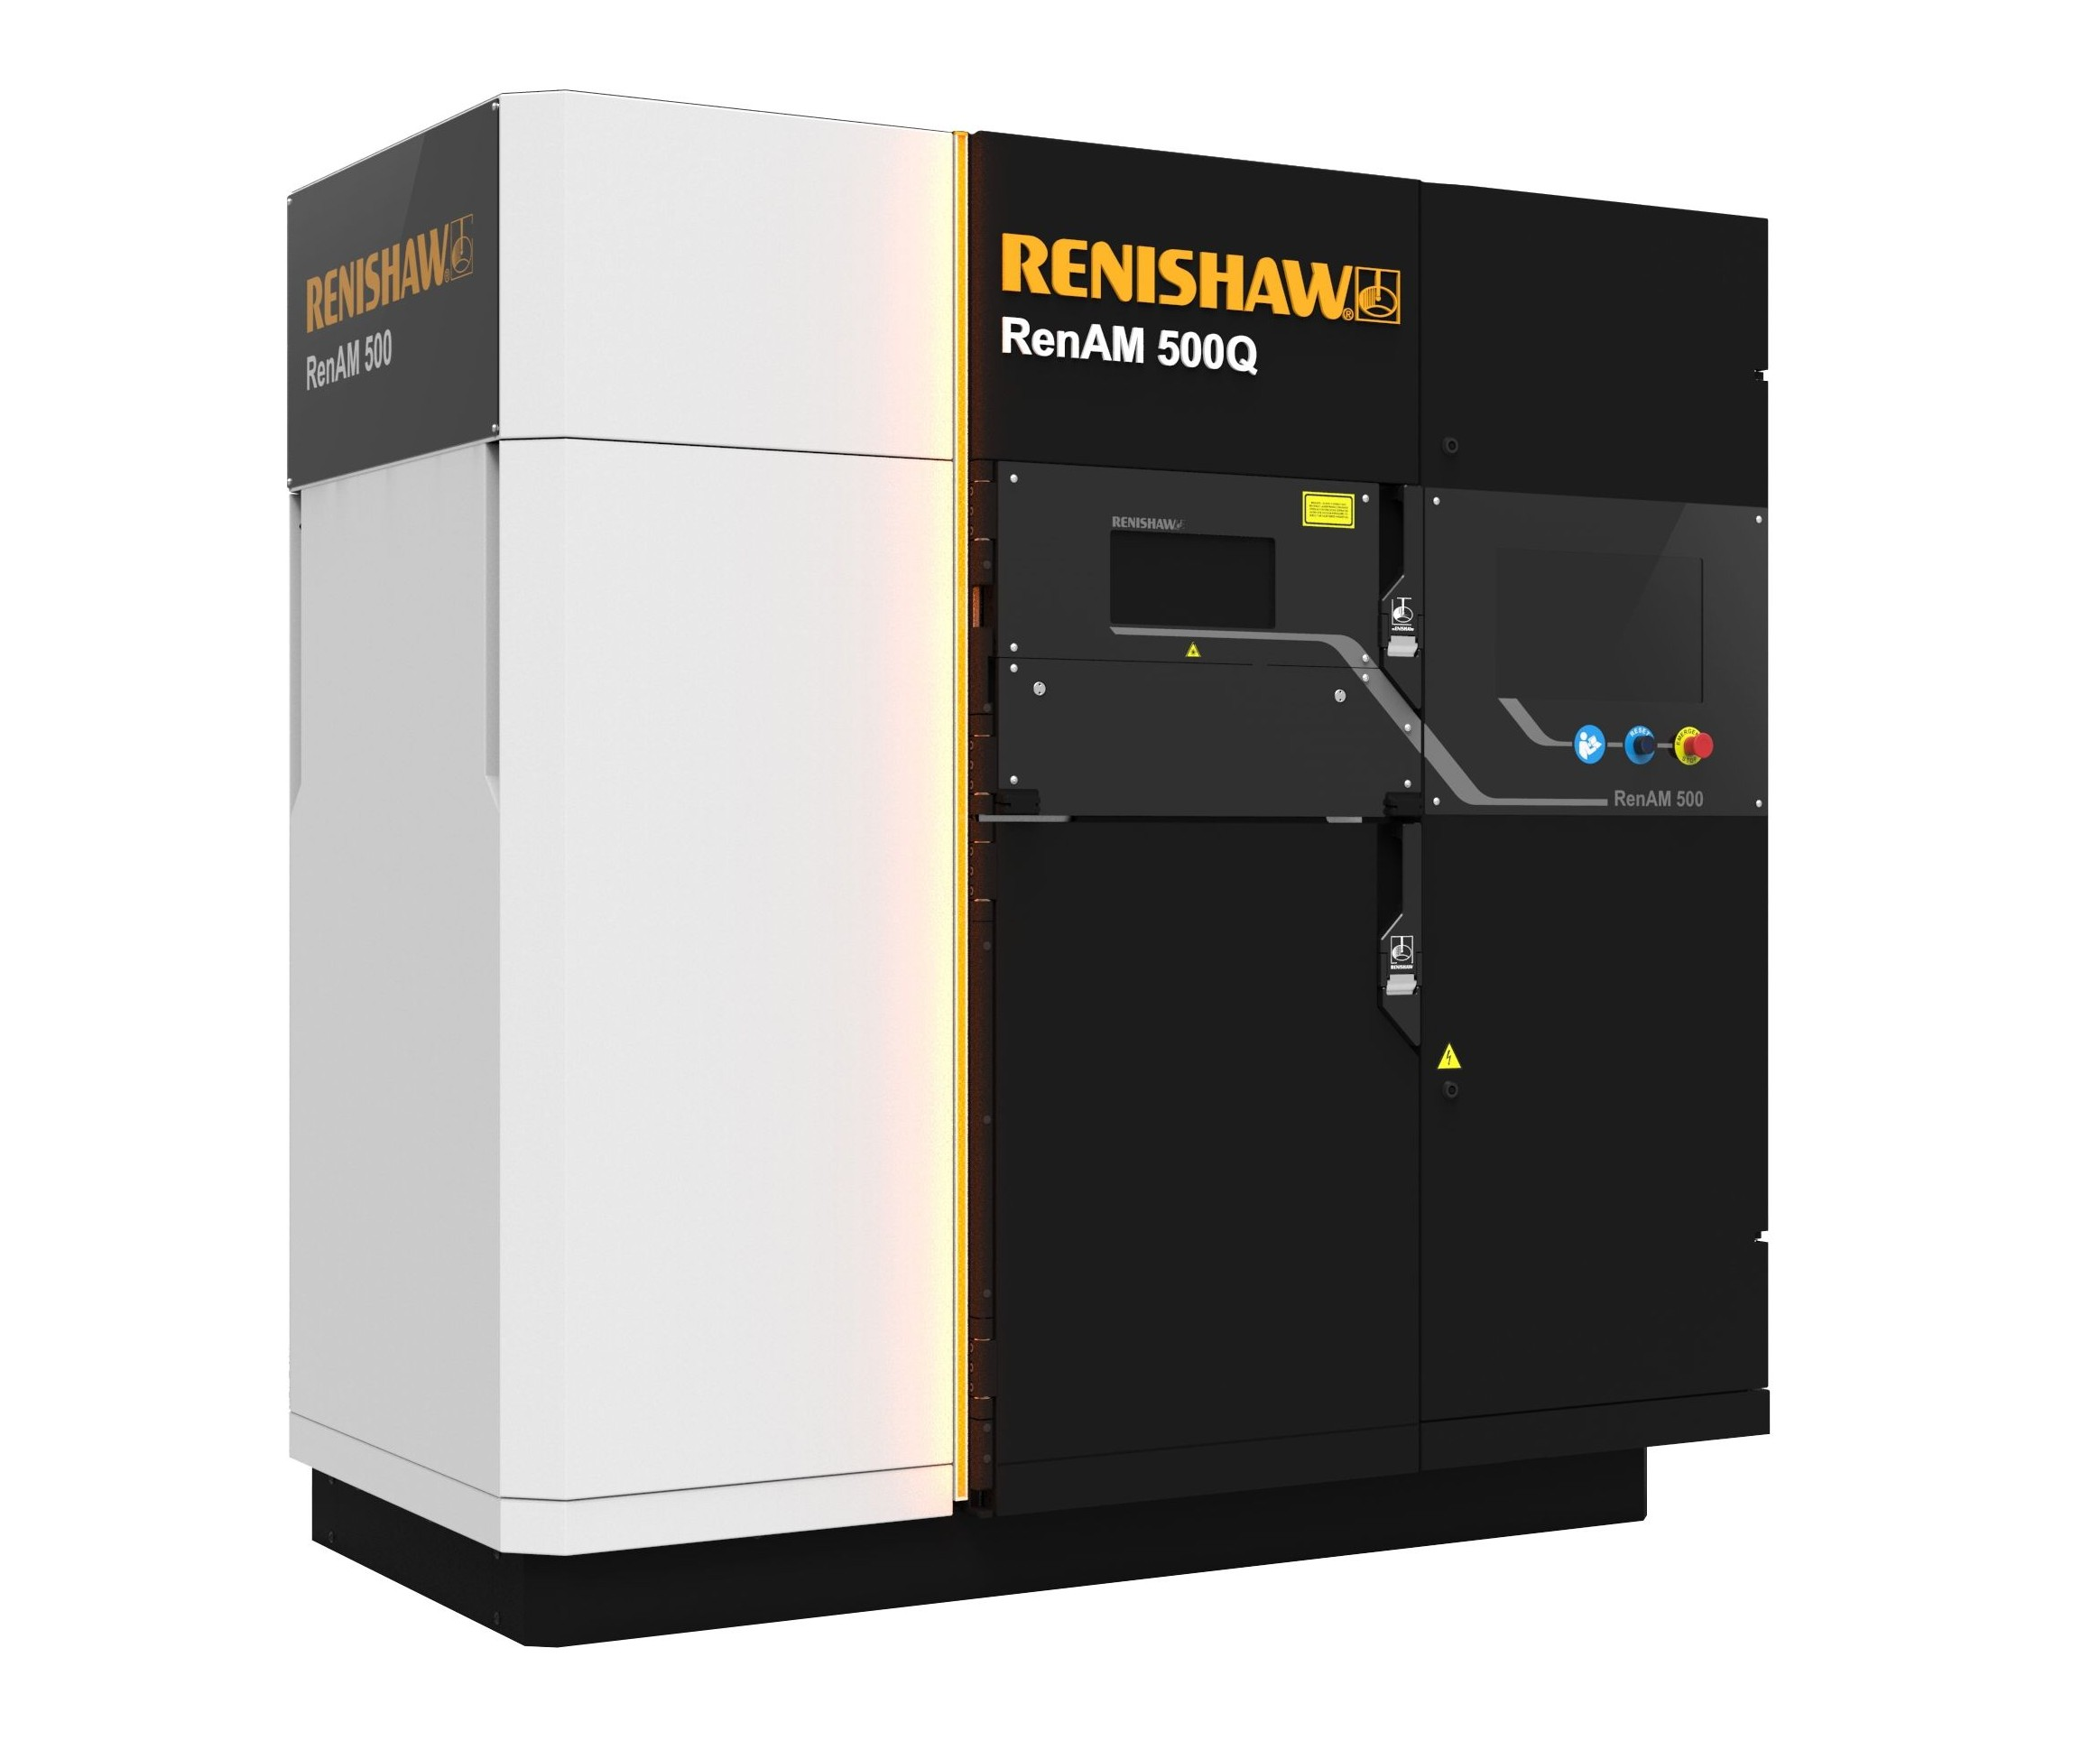 Renishaw RenAM 500Q metal additive manufacturing system